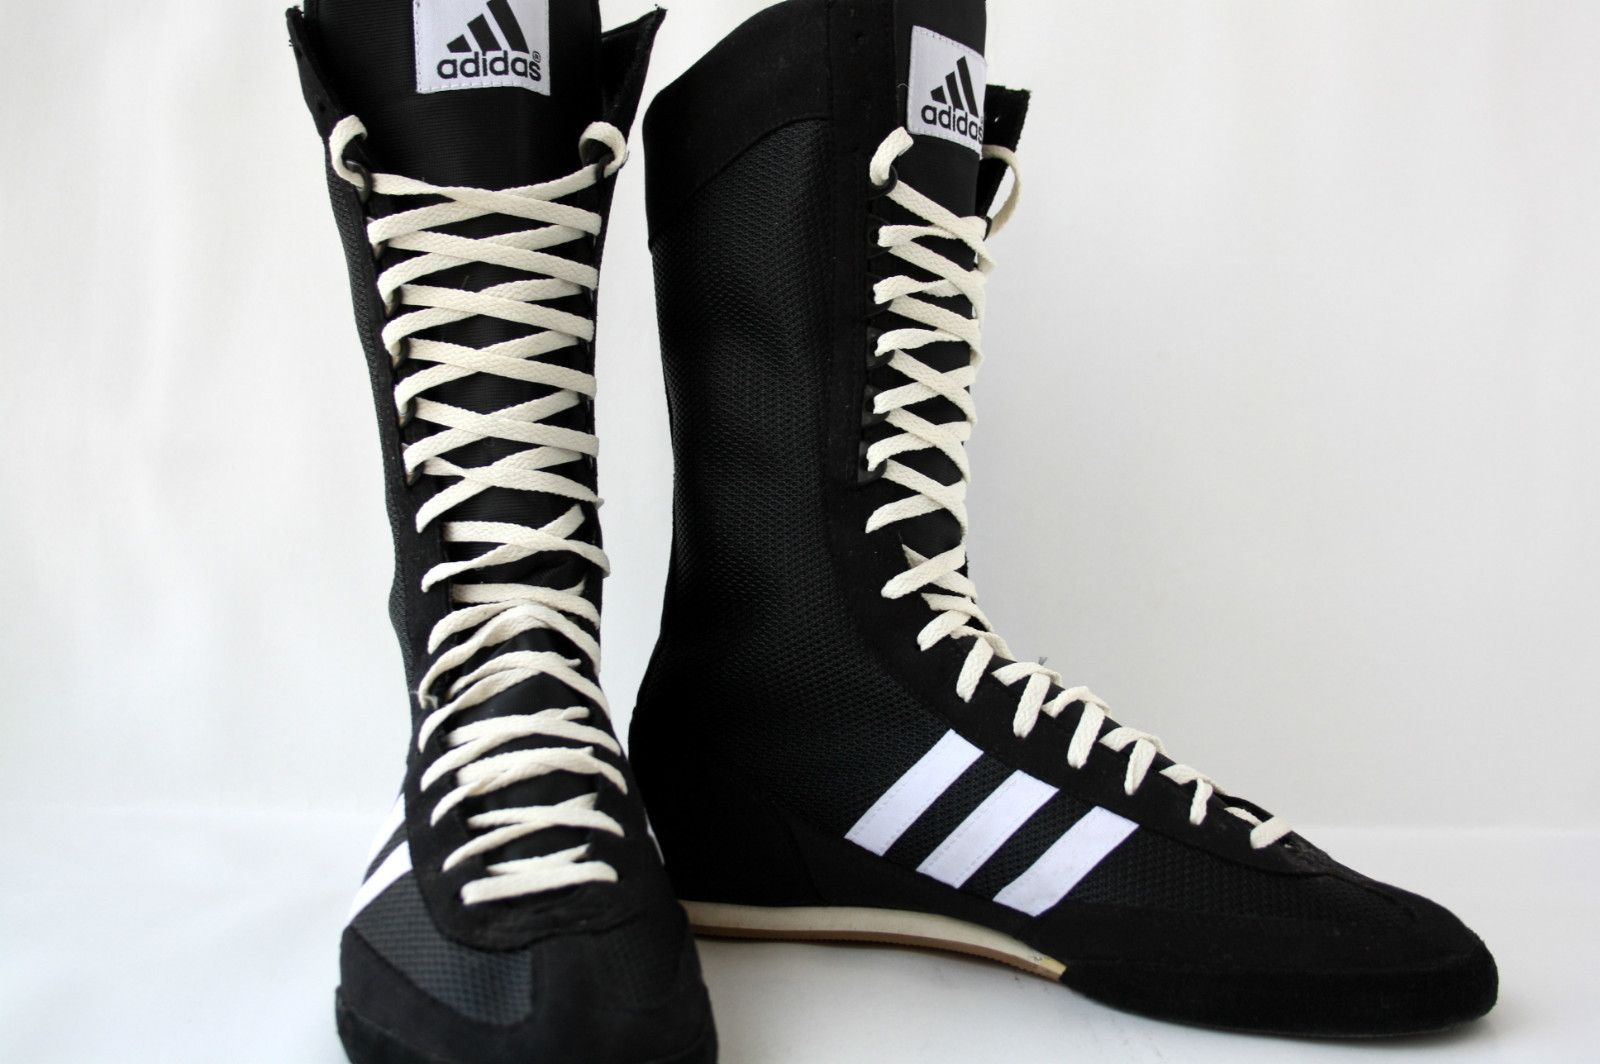 Vintage 90s Adidas Champ Speed Boxing Wrestling Shoes Boots Combat Freistil  EQT  37a3a660c6